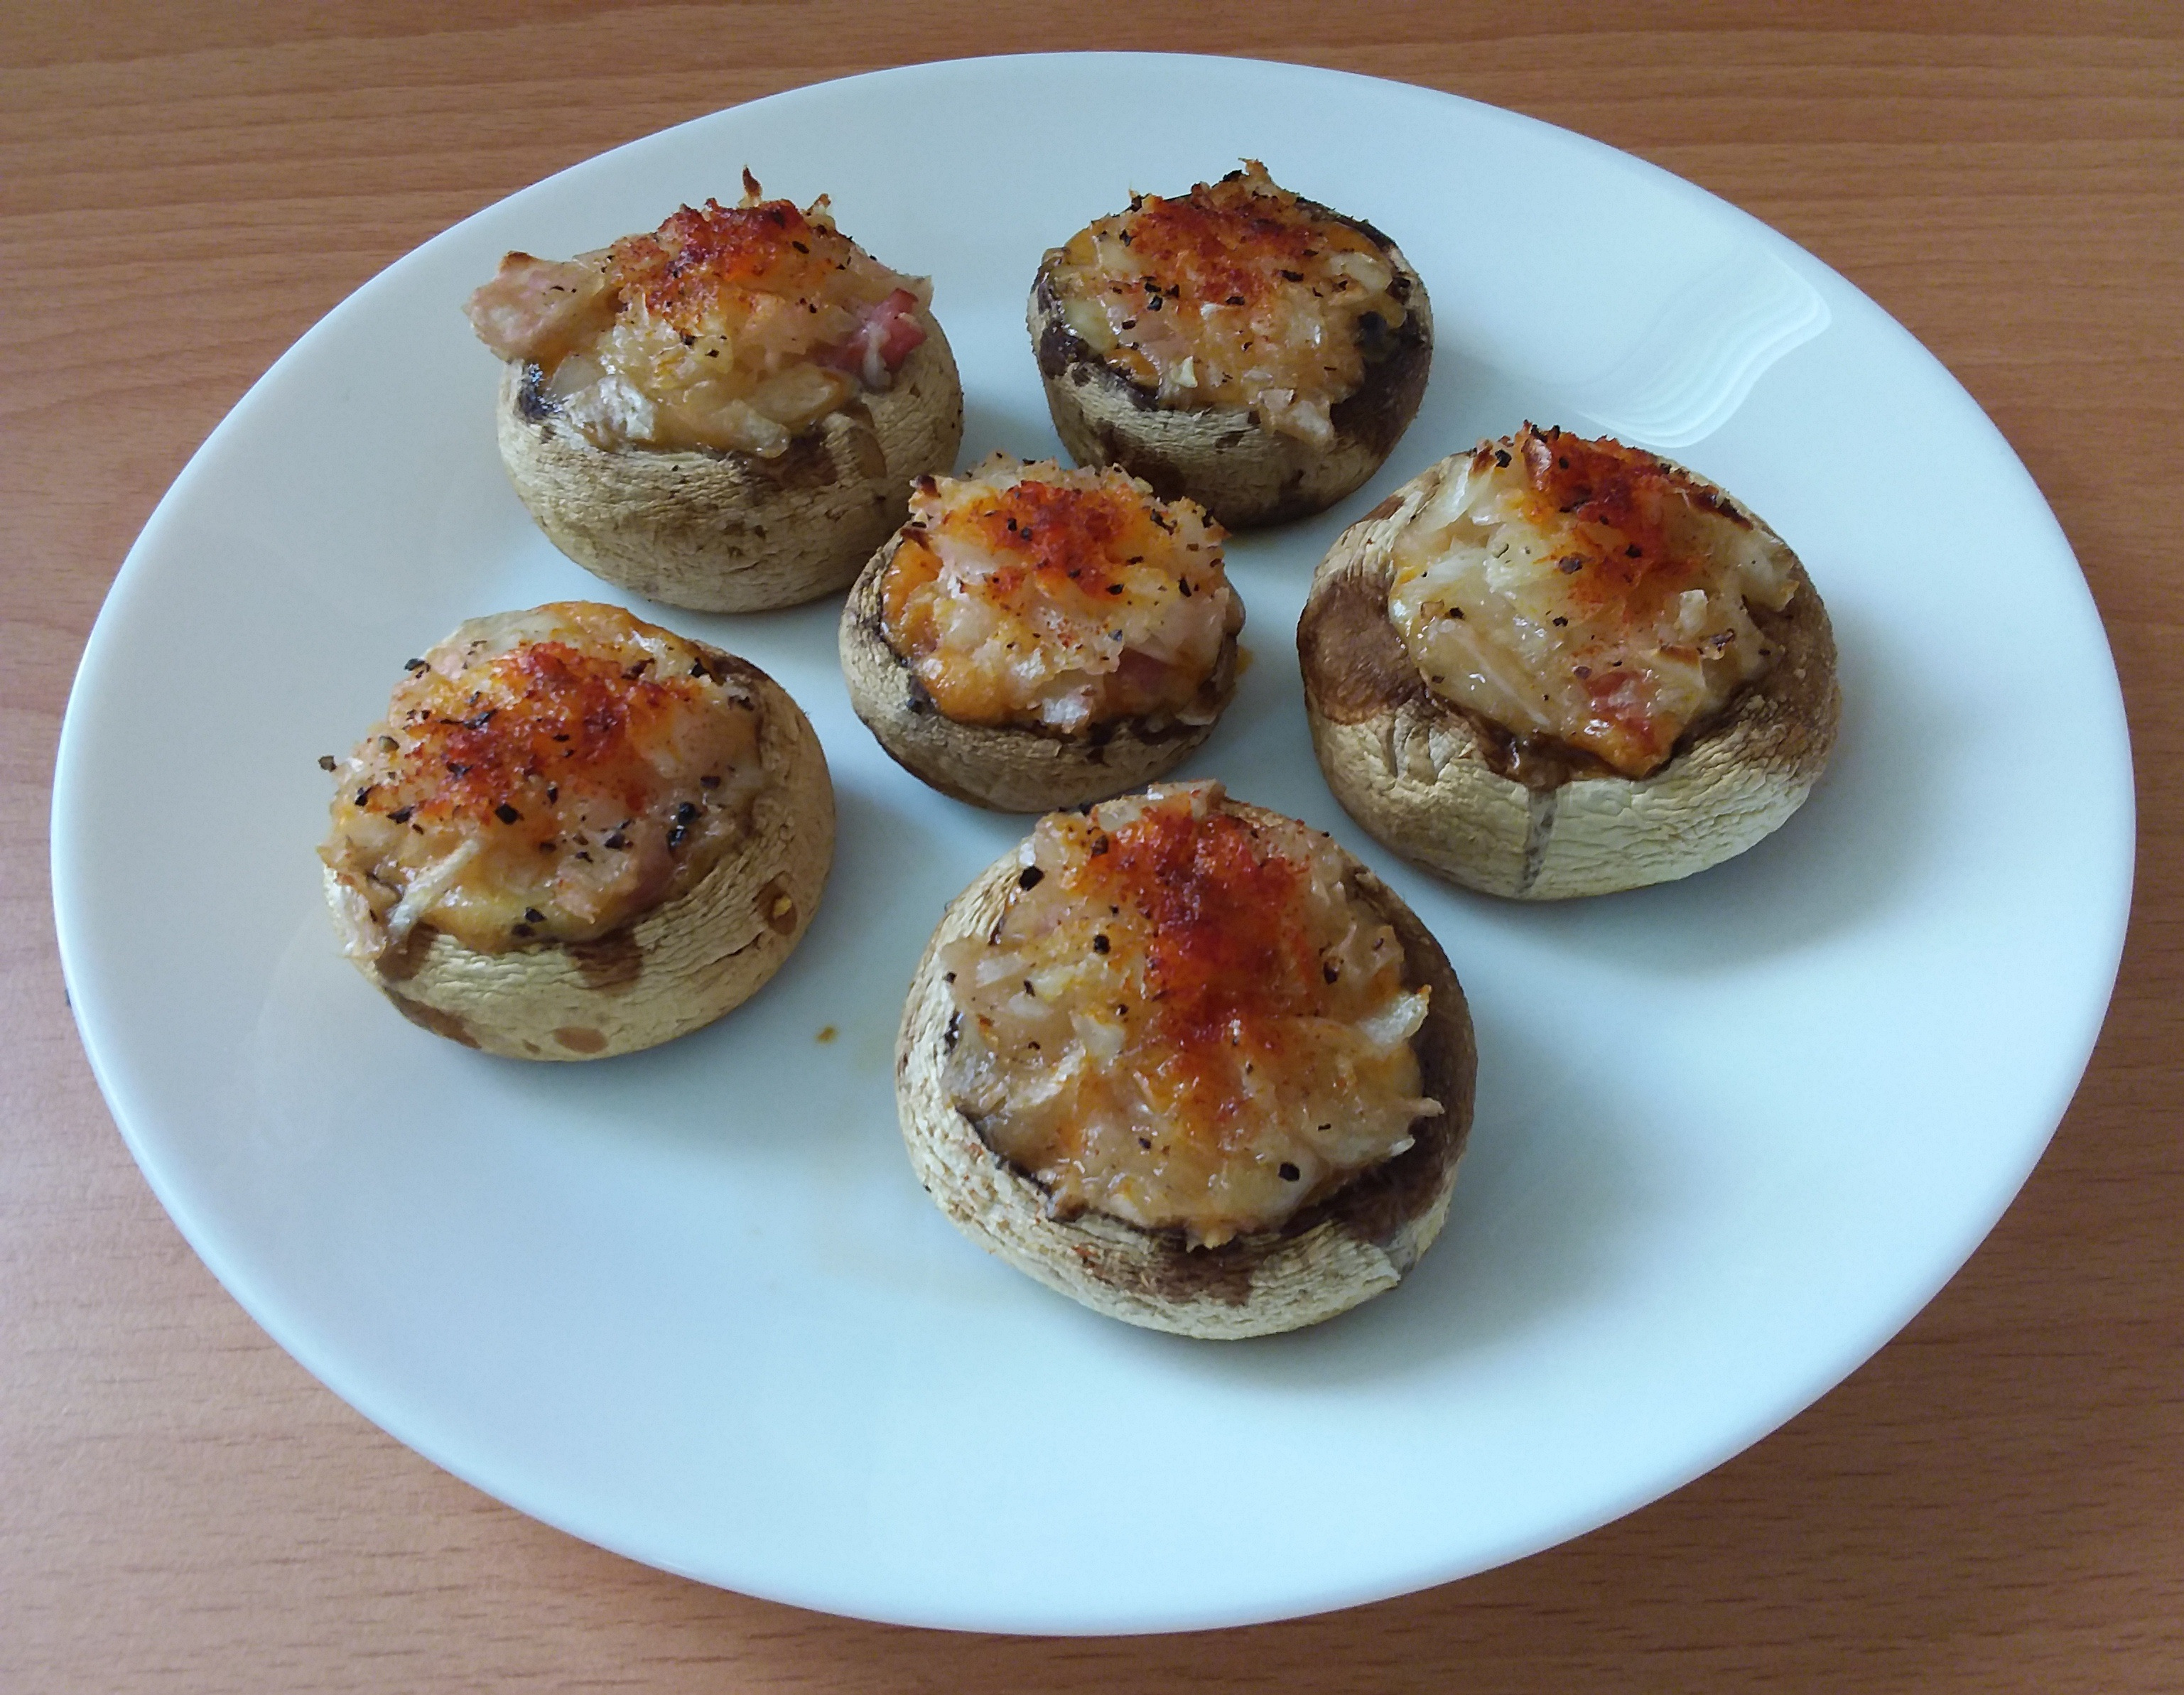 Mozzarella and Bacon Stuffed Mushrooms - The Sim Architect